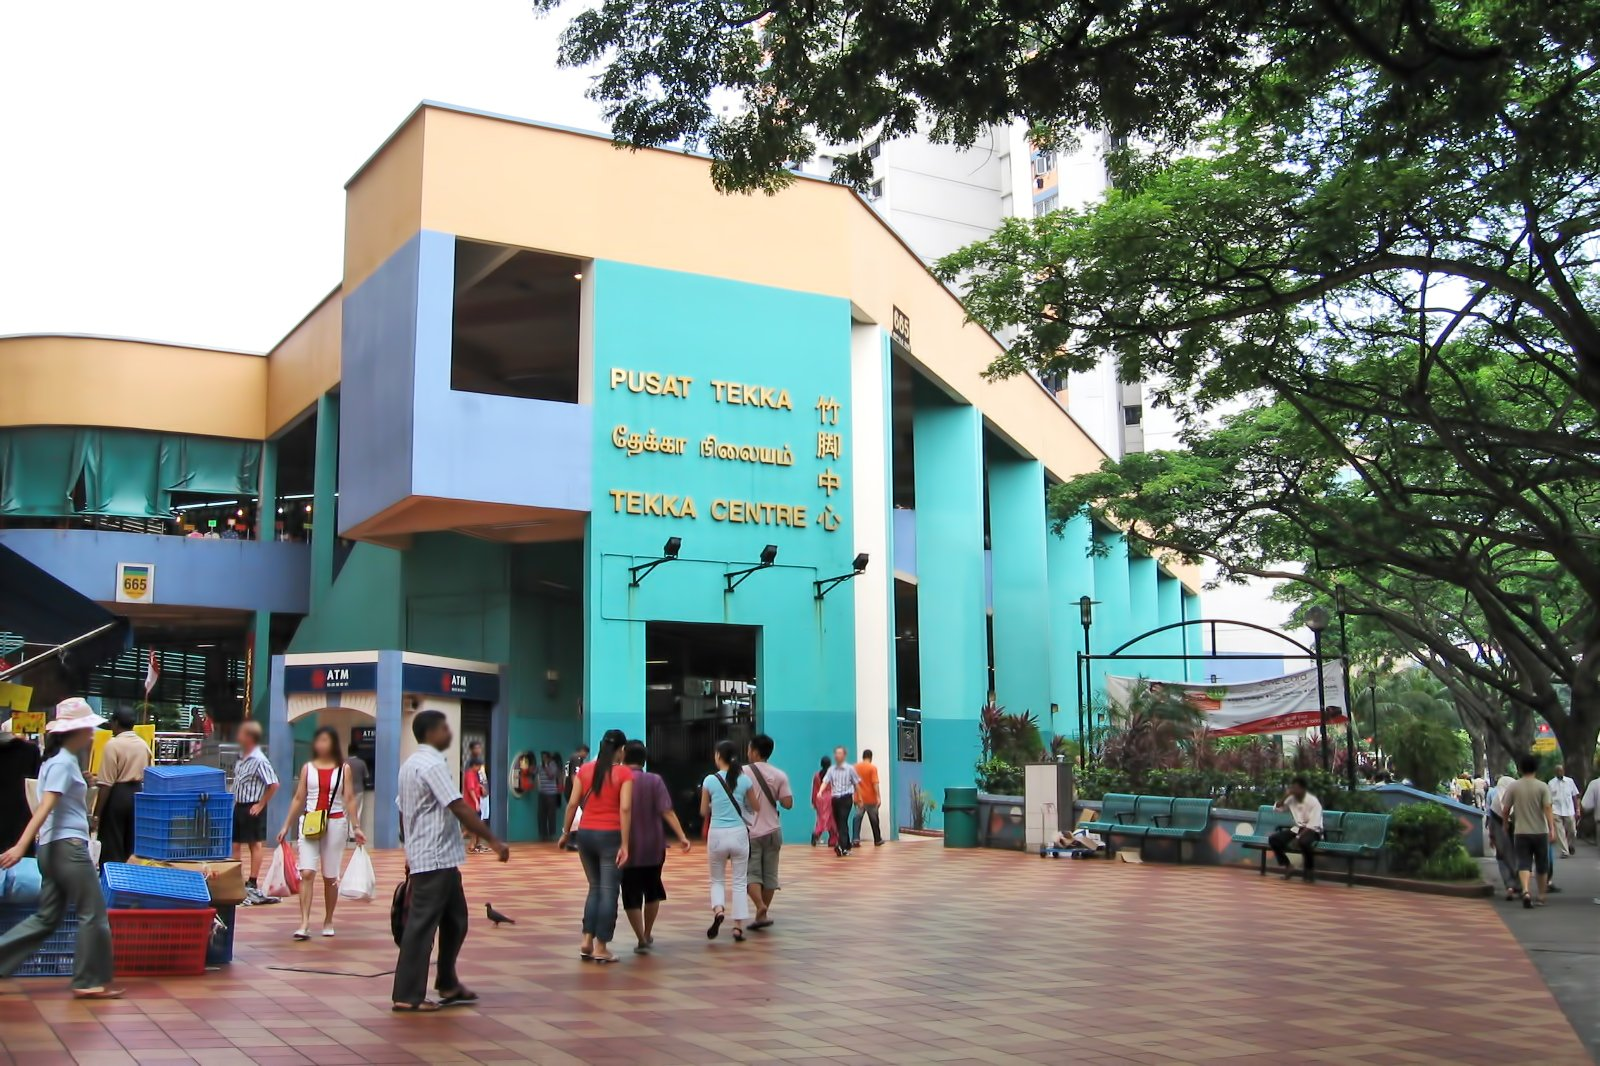 Tekka Center in Singapore - Little India's Colorful Hawker